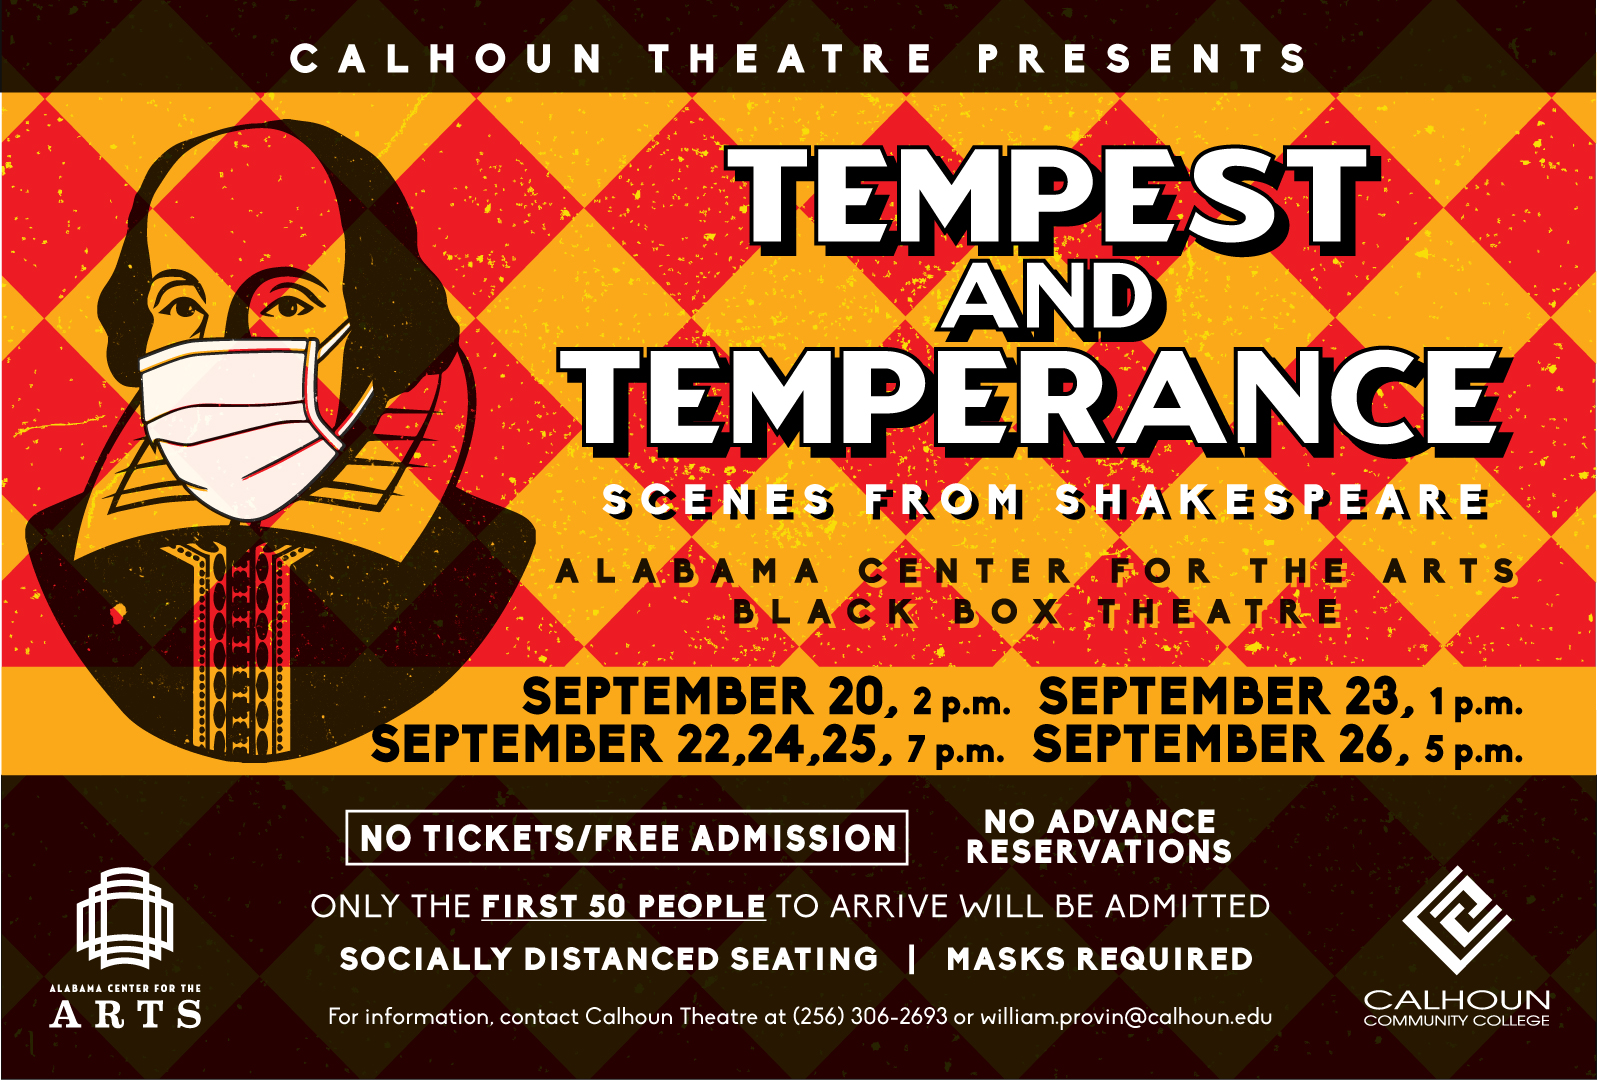 tempest-temperance-graphic